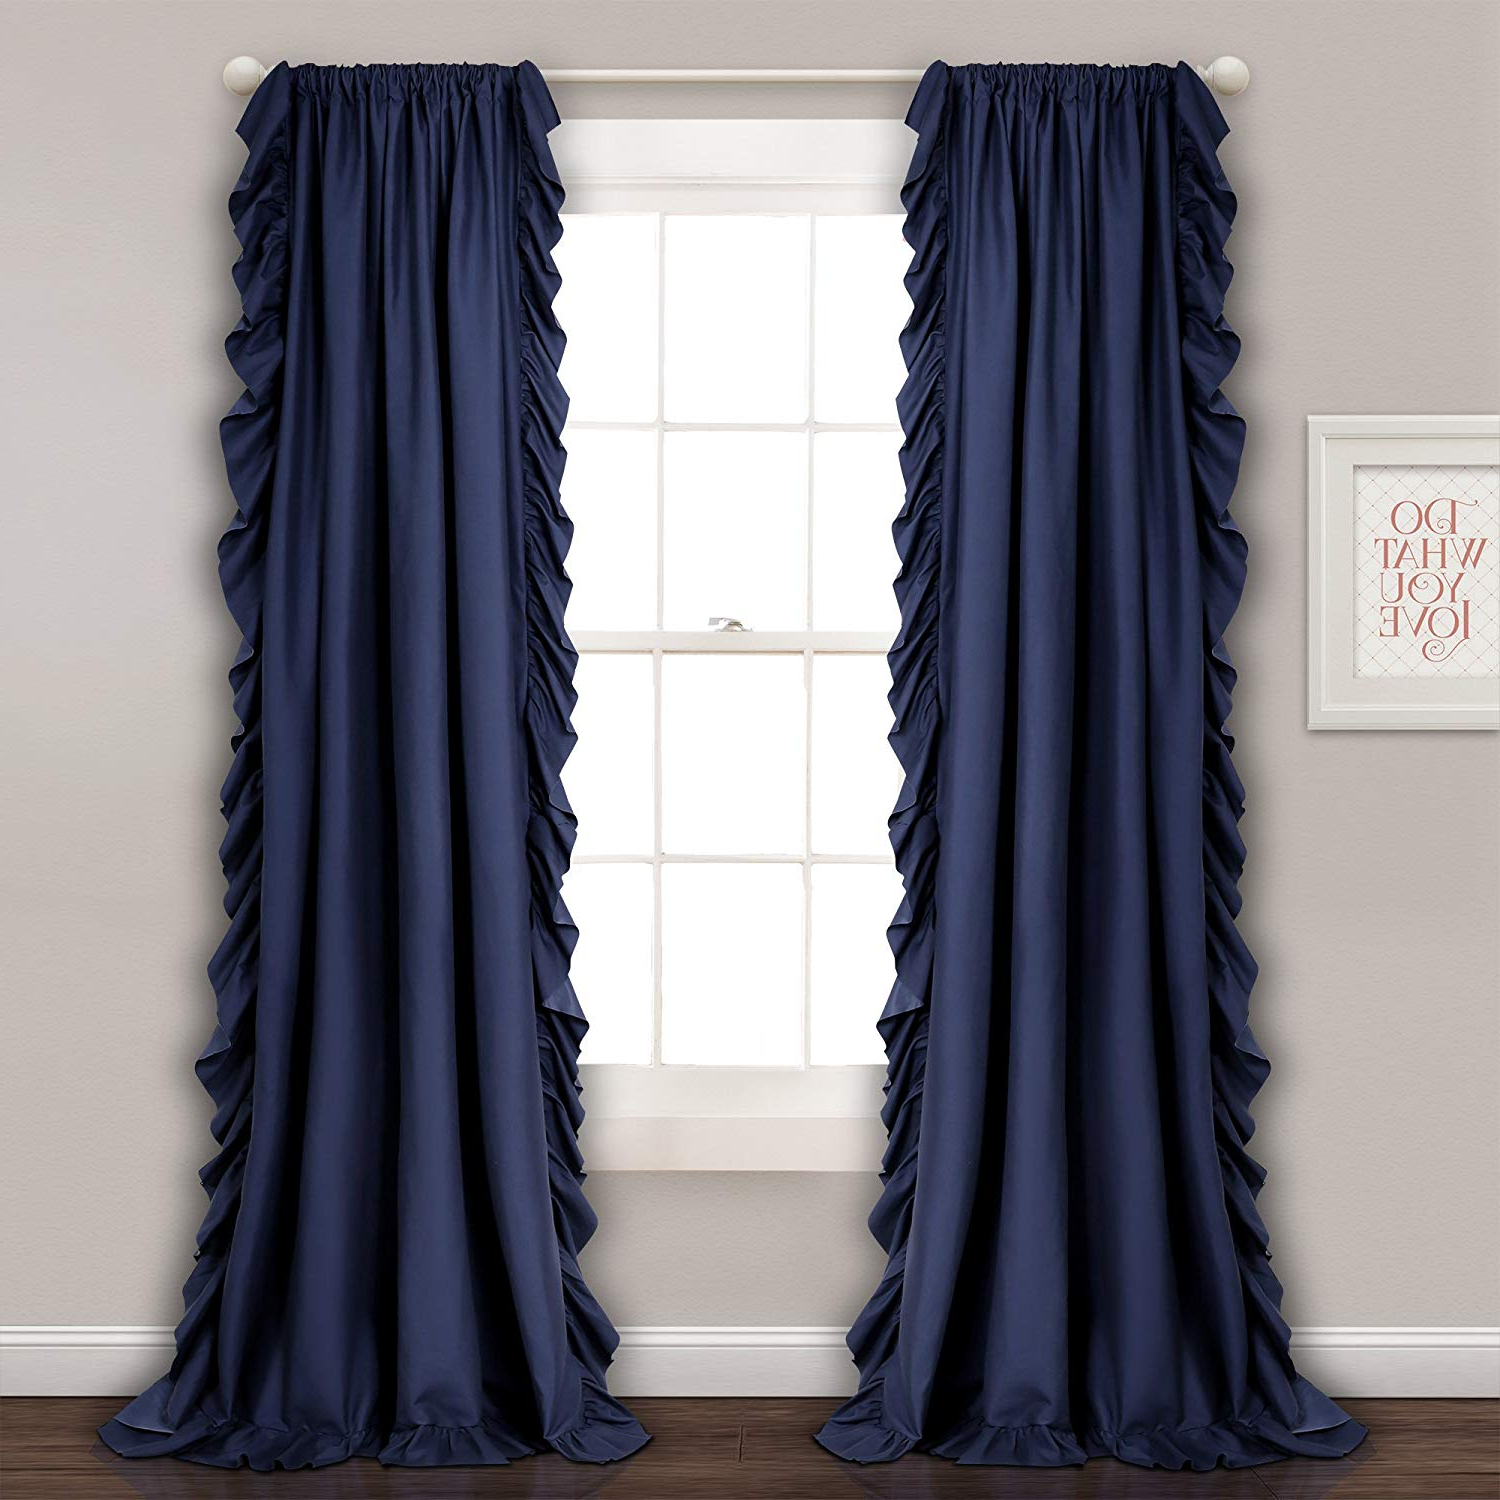 Fashionable Lush Decor Reyna Window Curtain Panel Pair, 54 X 84, Navy With Regard To Curtain Panel Pairs (Gallery 11 of 20)